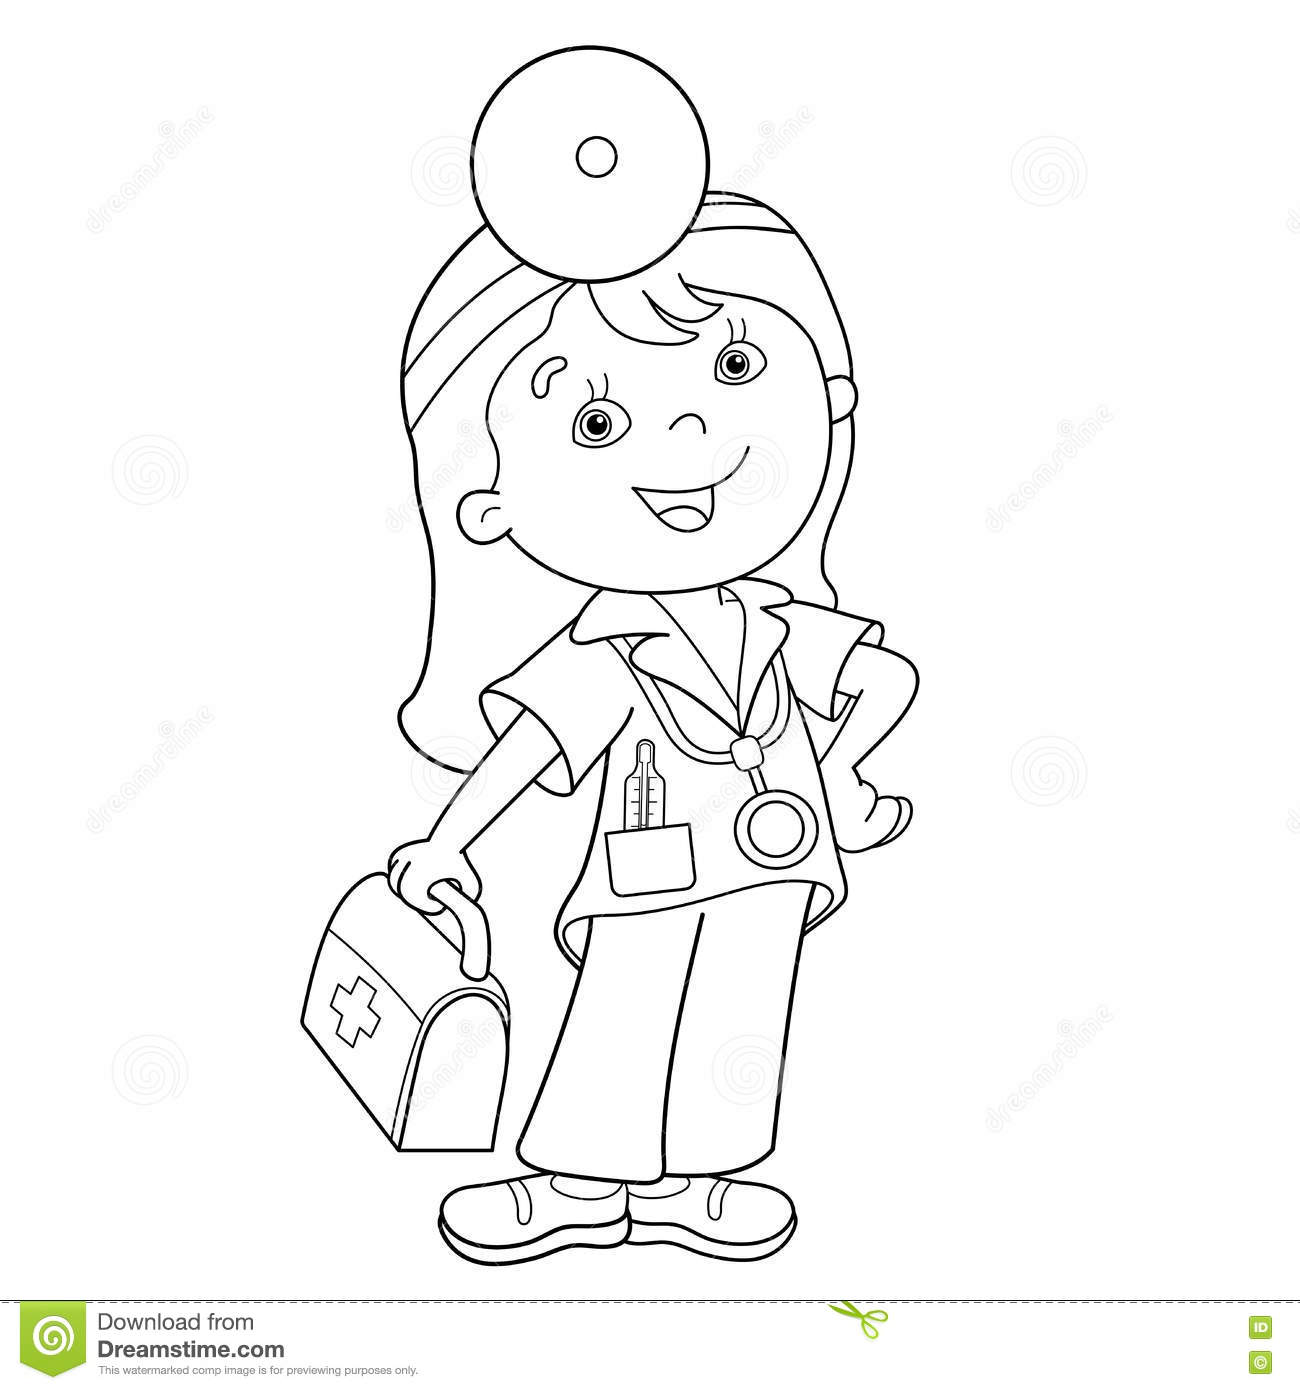 coloring page outline of cartoon doctor with first aid kit - Aid Coloring Pages Kids